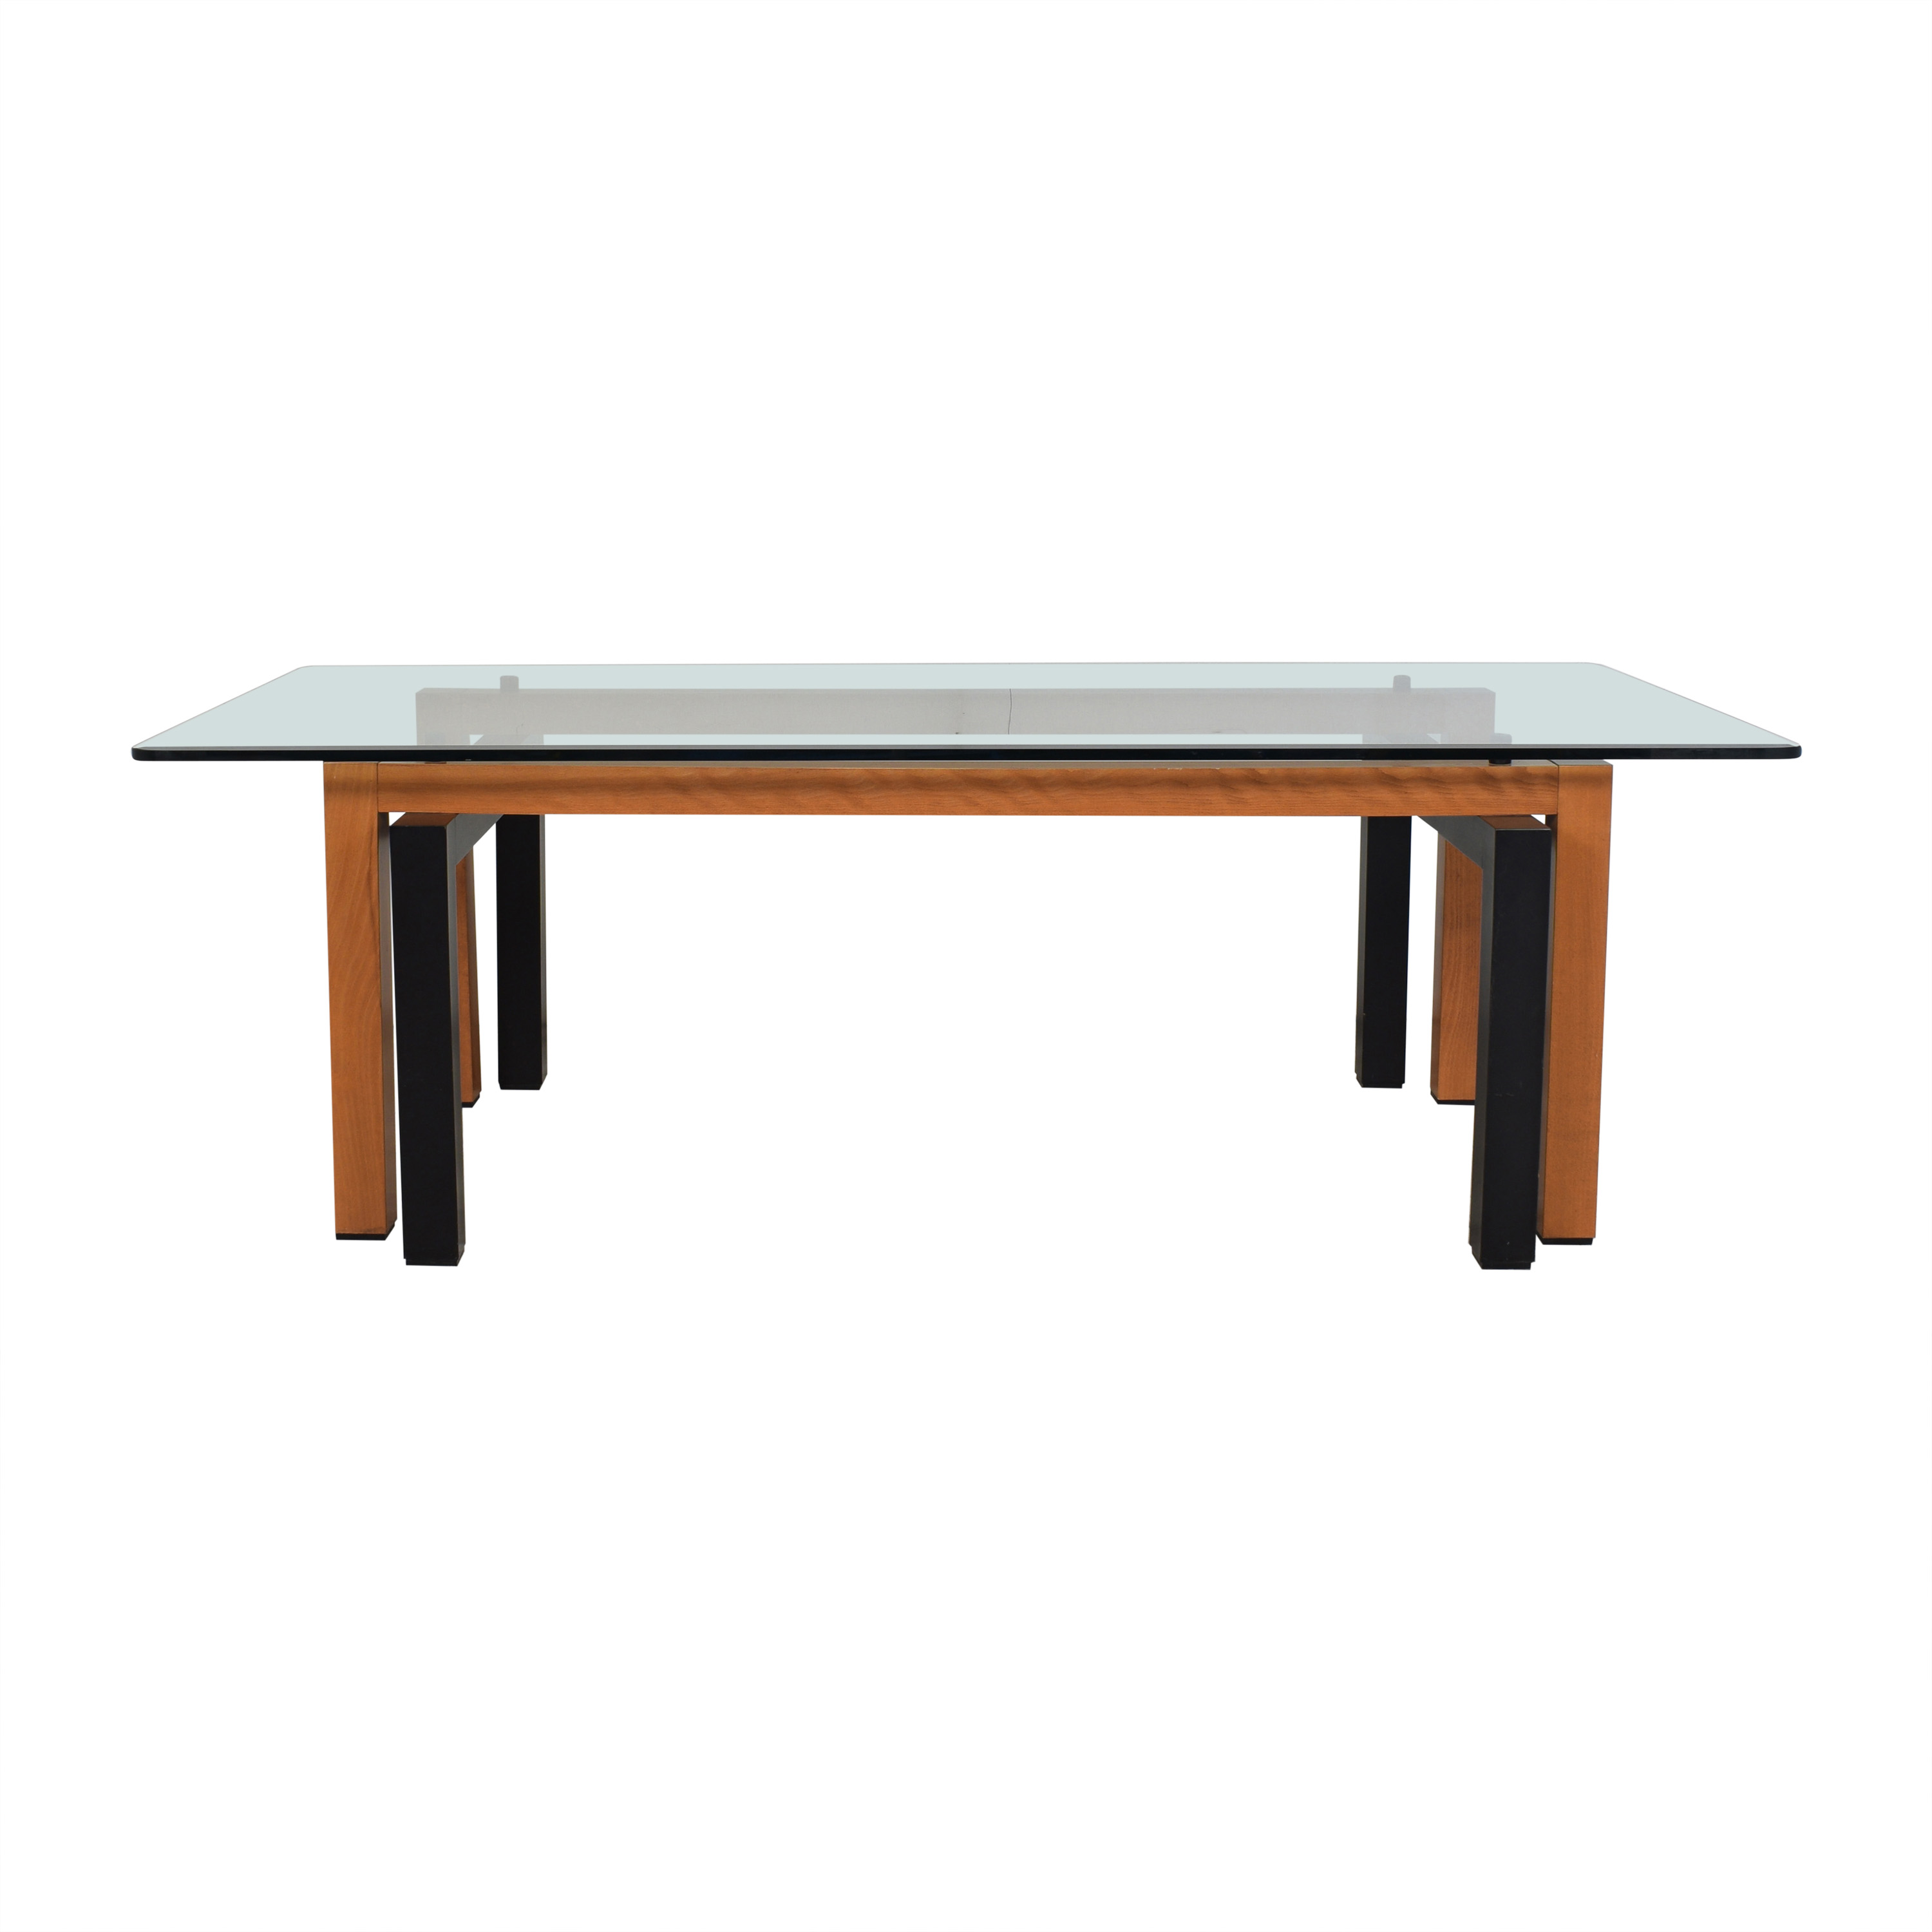 Ligna Furniture Dining Table / Tables